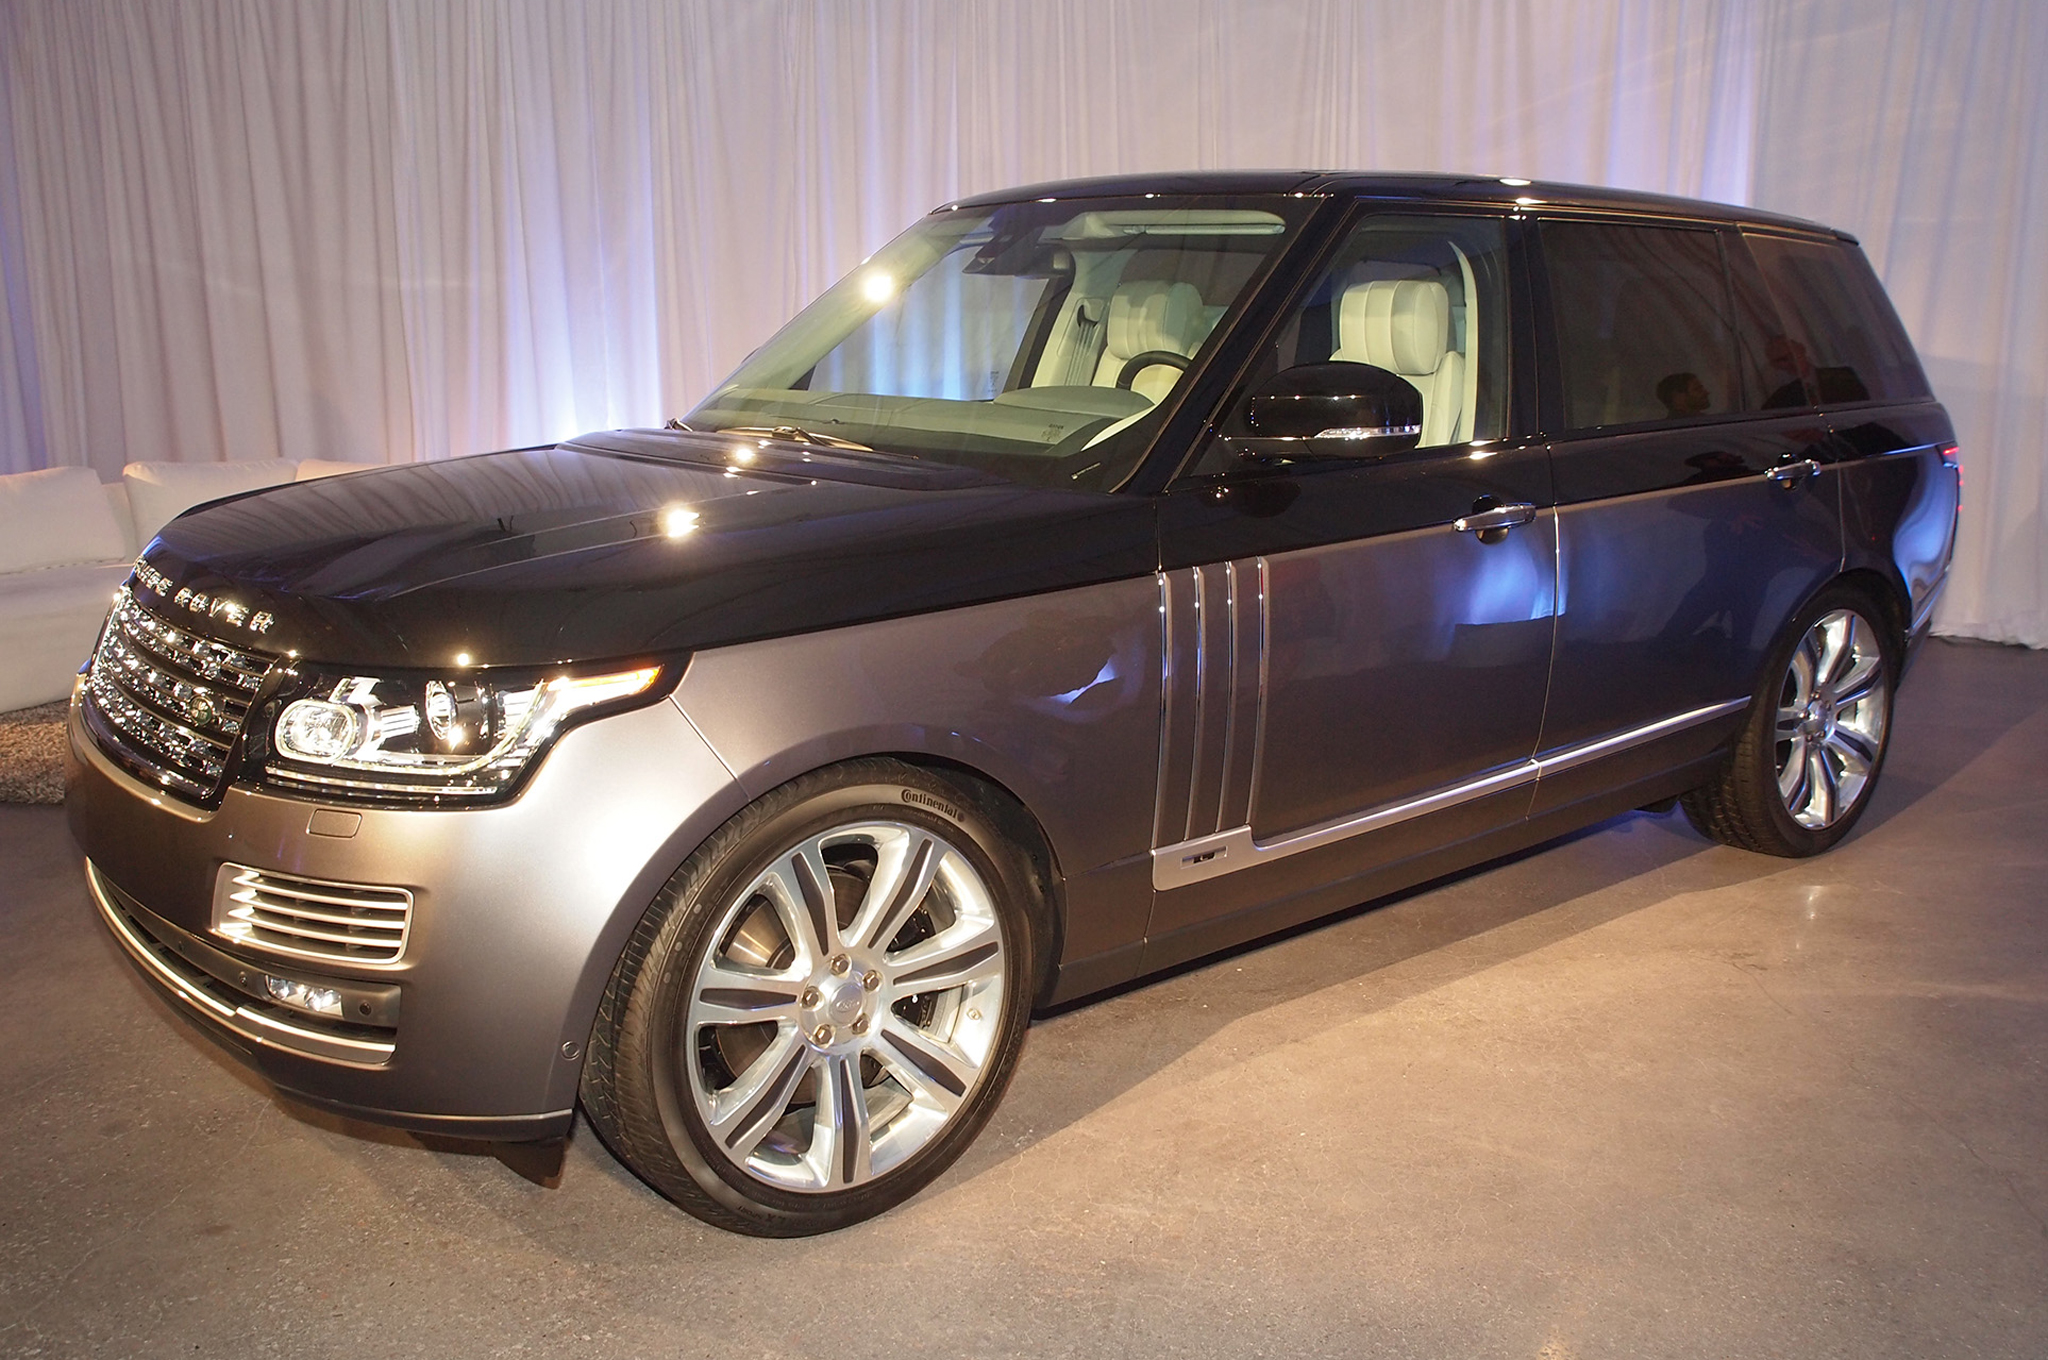 https://enthusiastnetwork.s3.amazonaws.com/uploads/sites/5/2015/03/2016-Land-Rover-Range-Rover-SVAutobiography-front-three-quarters.jpg?impolicy=modalgallerygrid